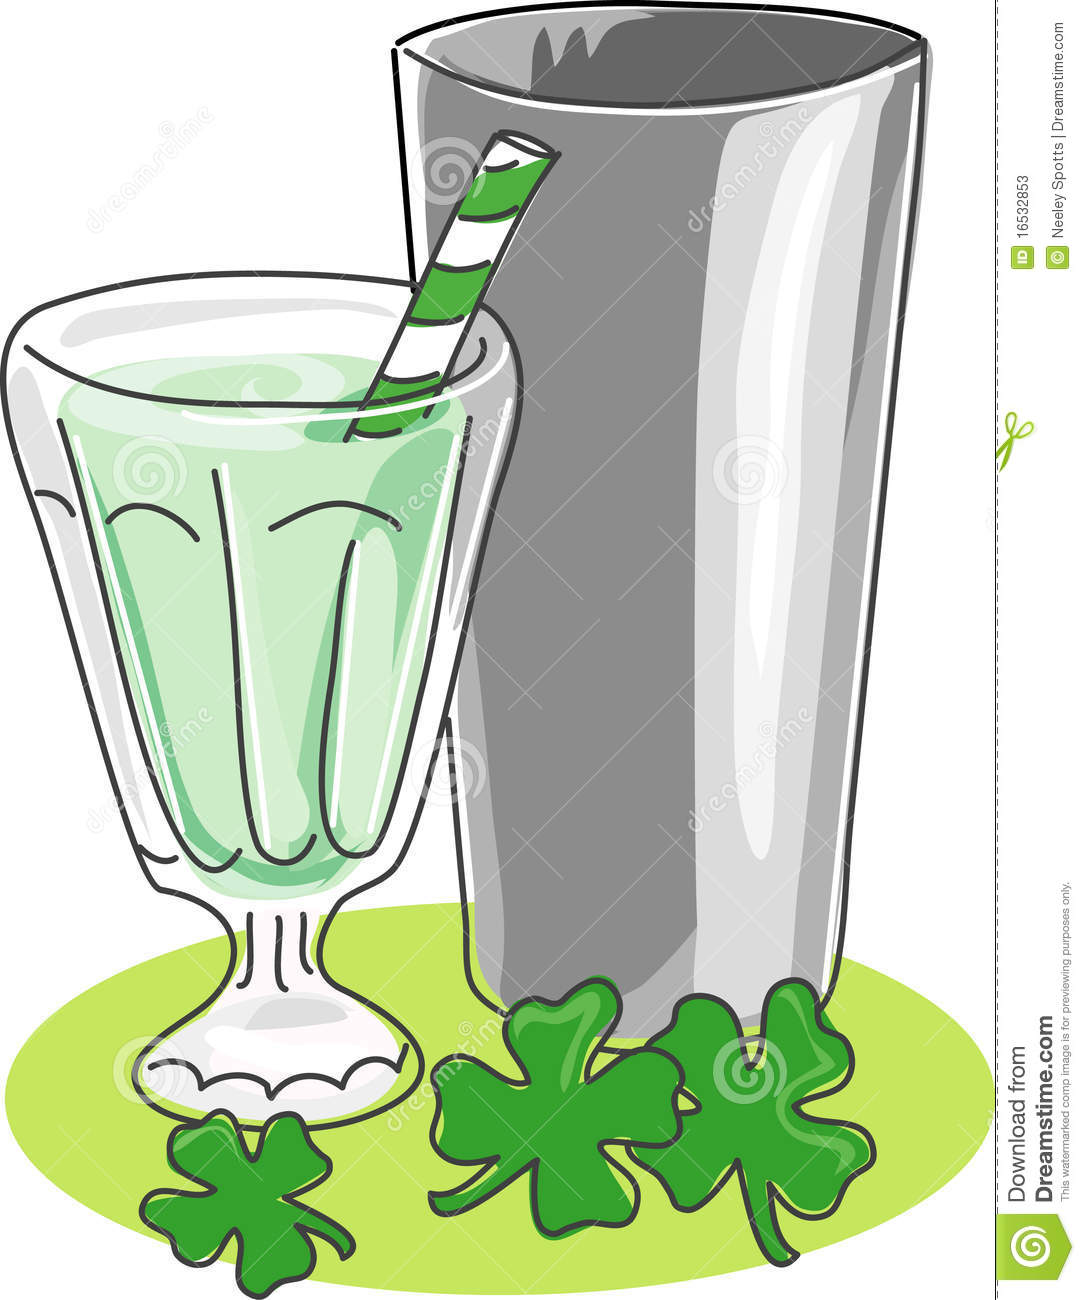 stylized sketch of a milkshake in a soda glass with stainless steel ...